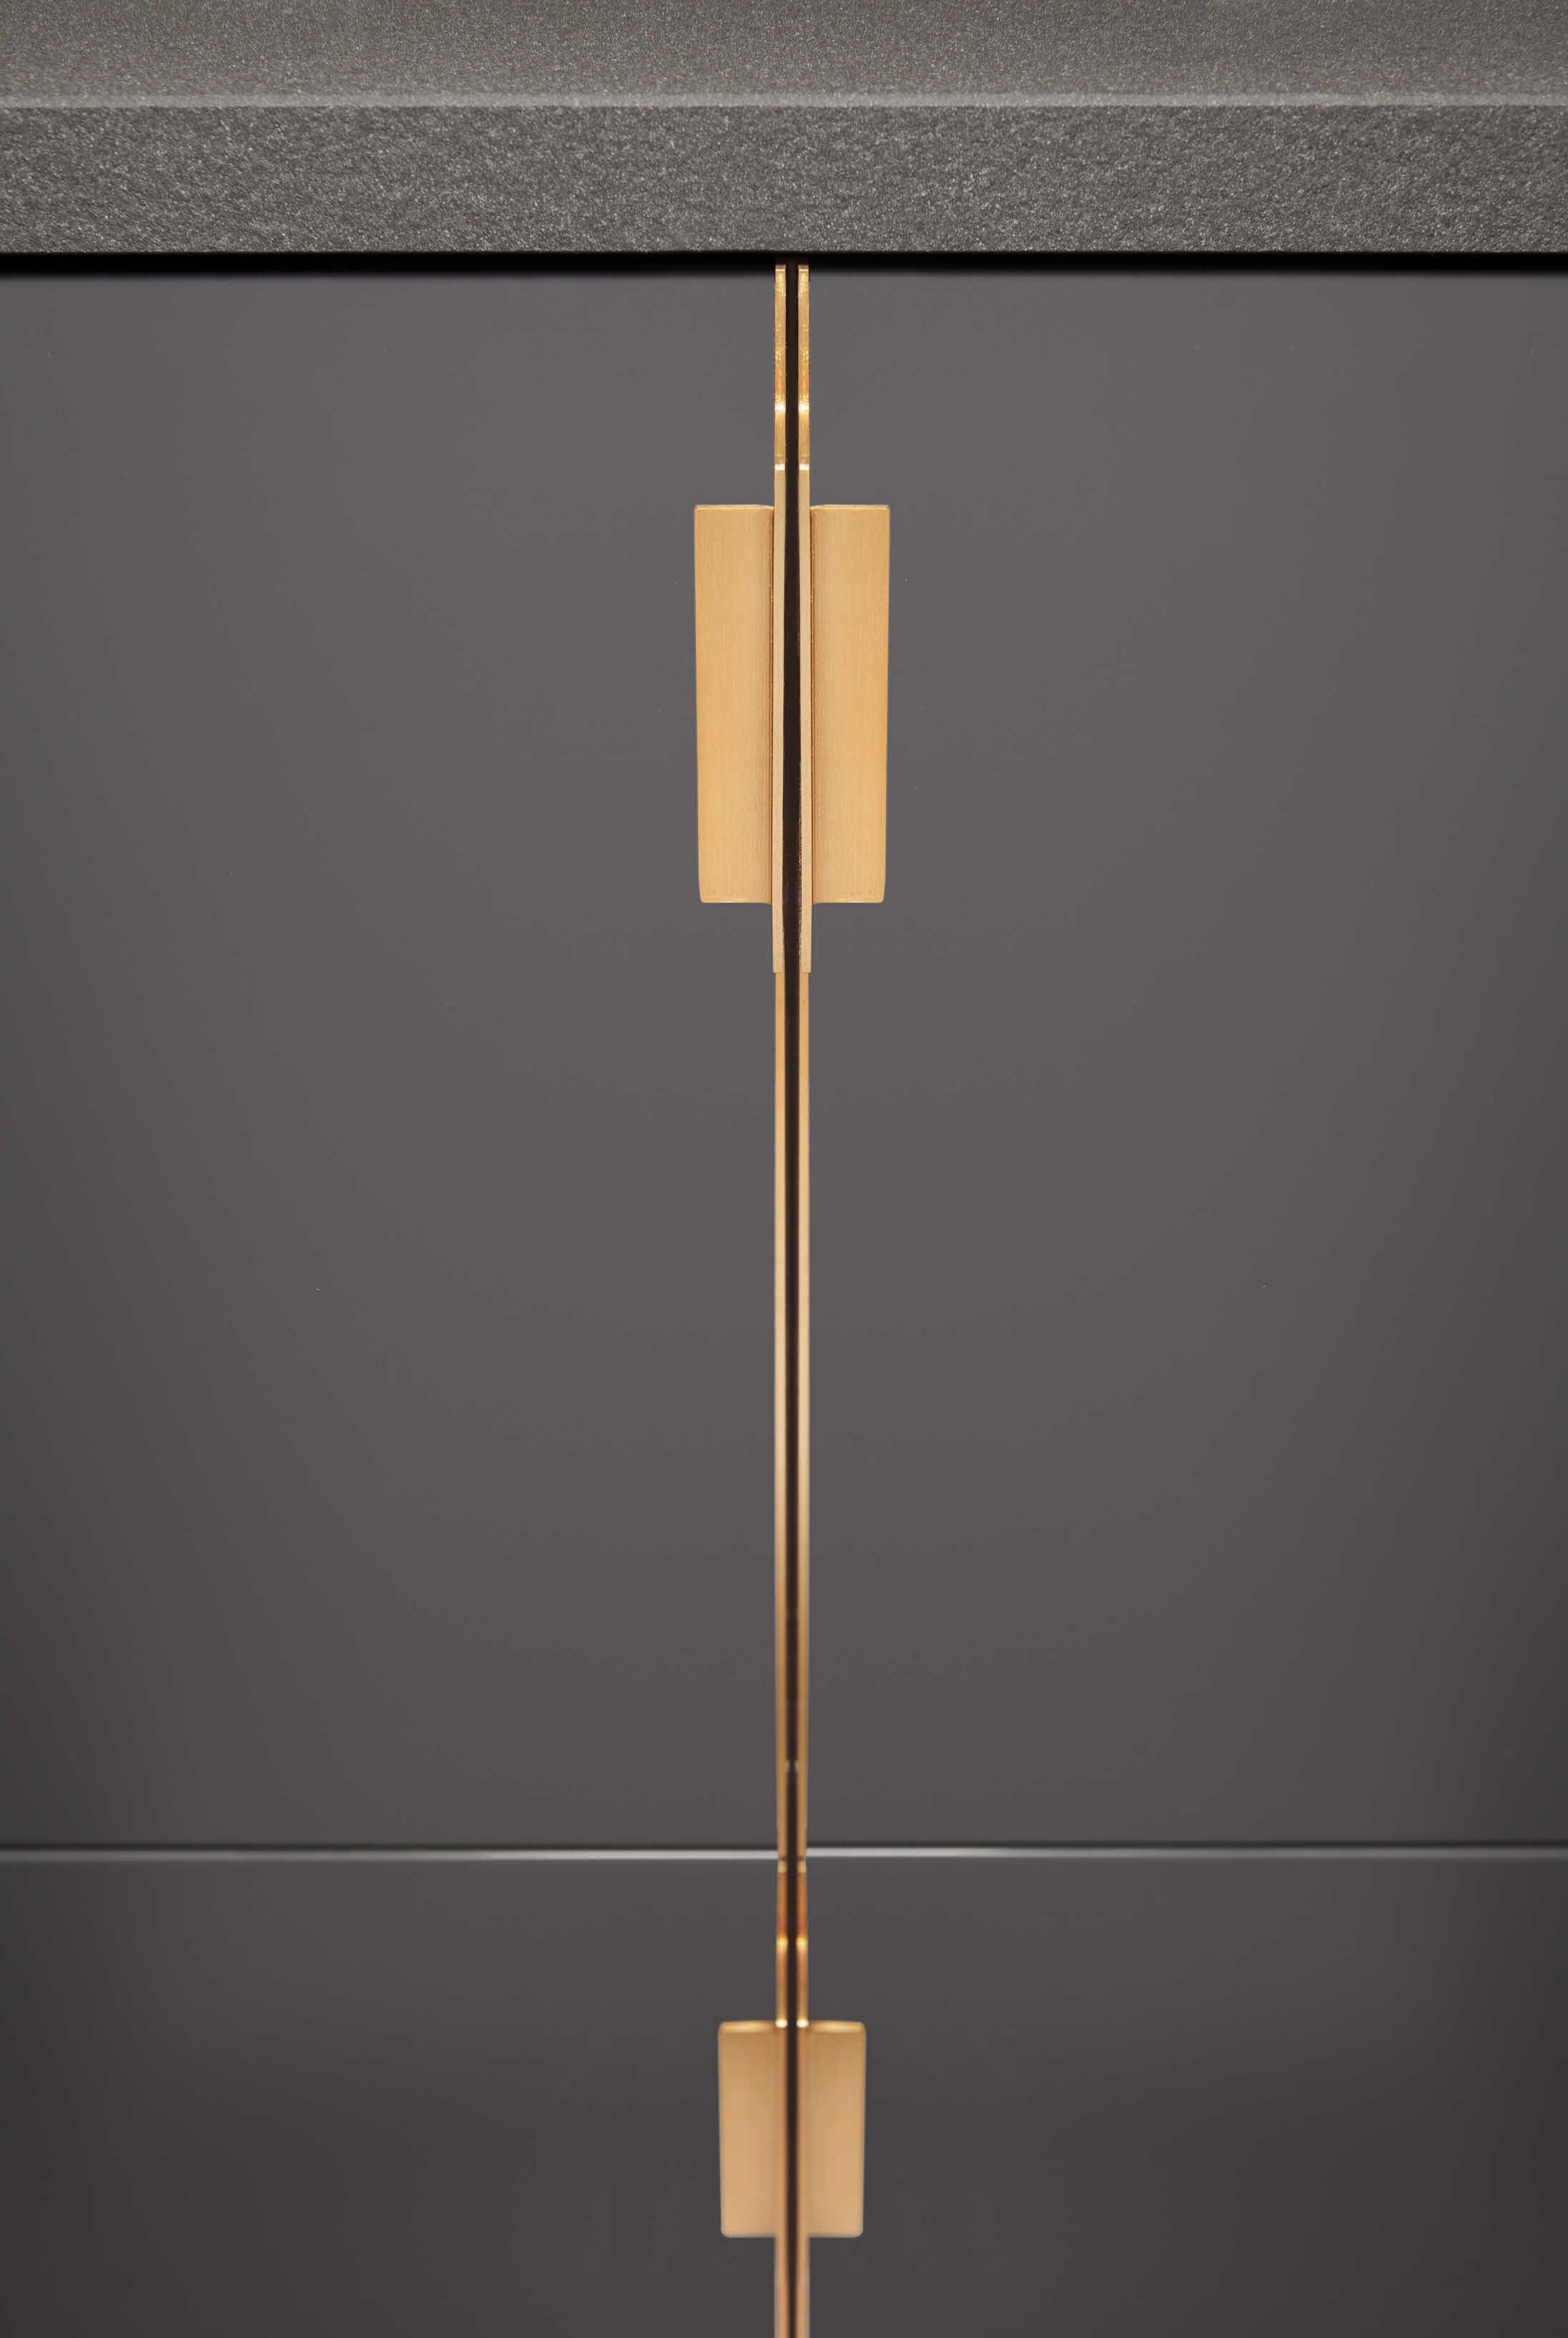 Poggenpohl - The Fourth Wall Concept, pull handle repin & like ...